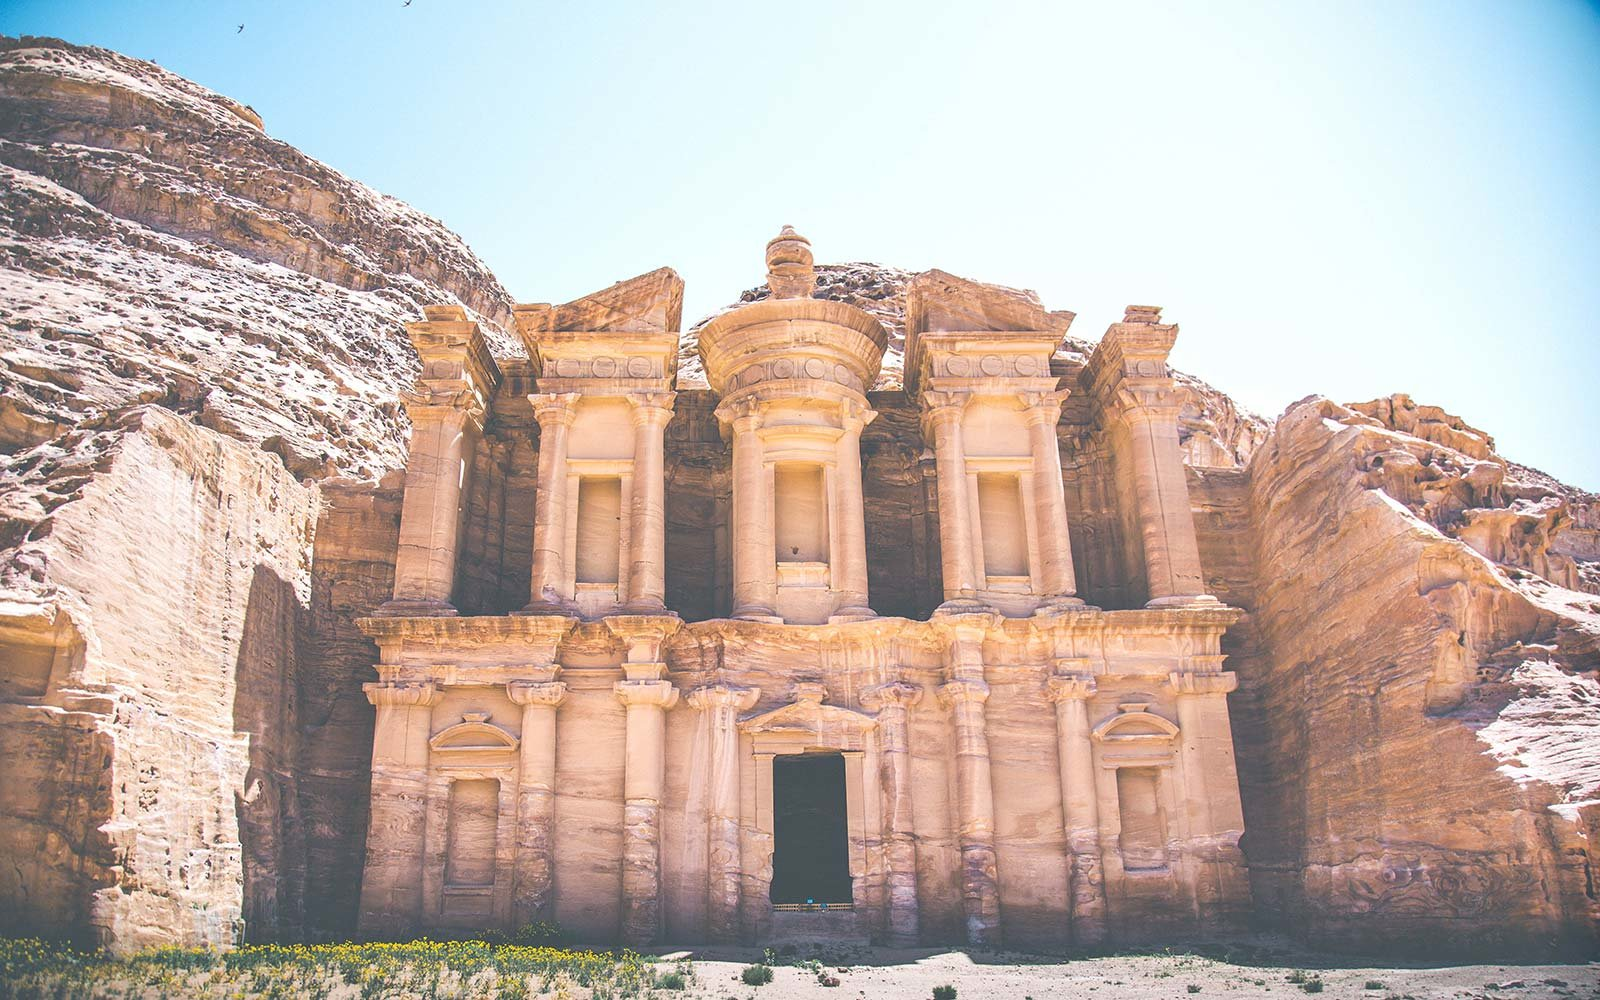 From Dana to Petra, 6 Days on The New Jordan Trail ancient palace